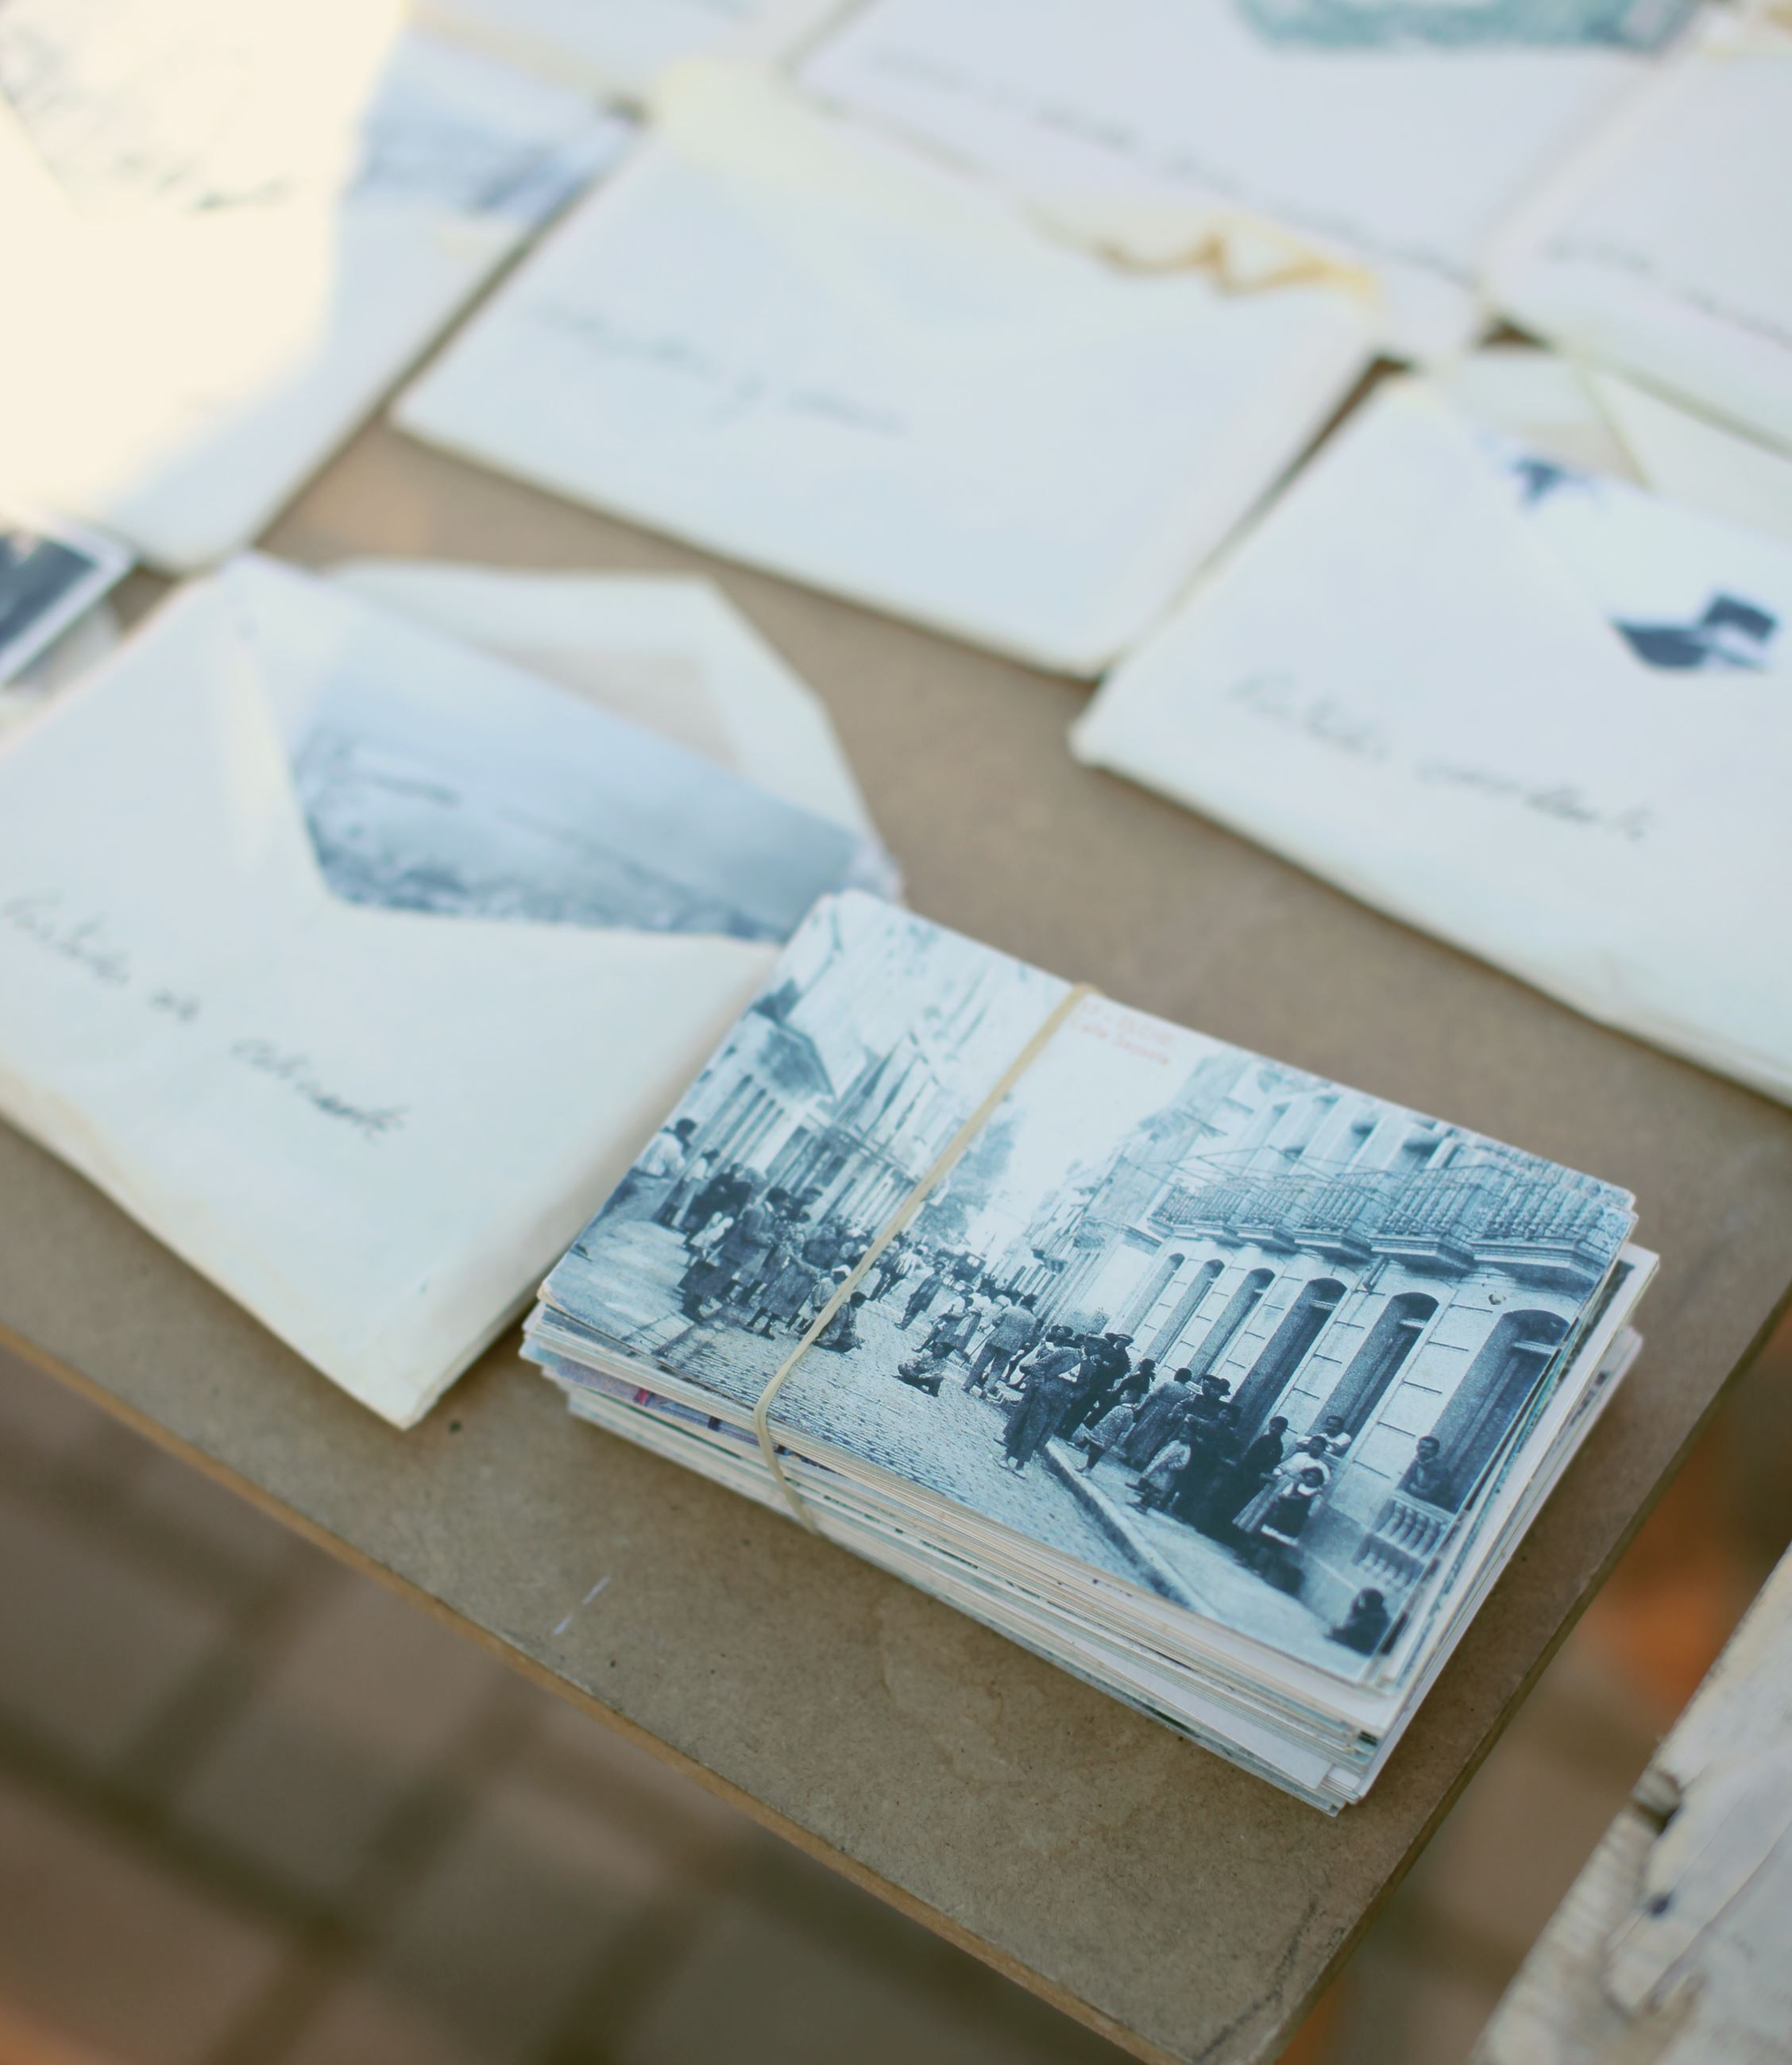 Stacks of Photos with labeled envelopes